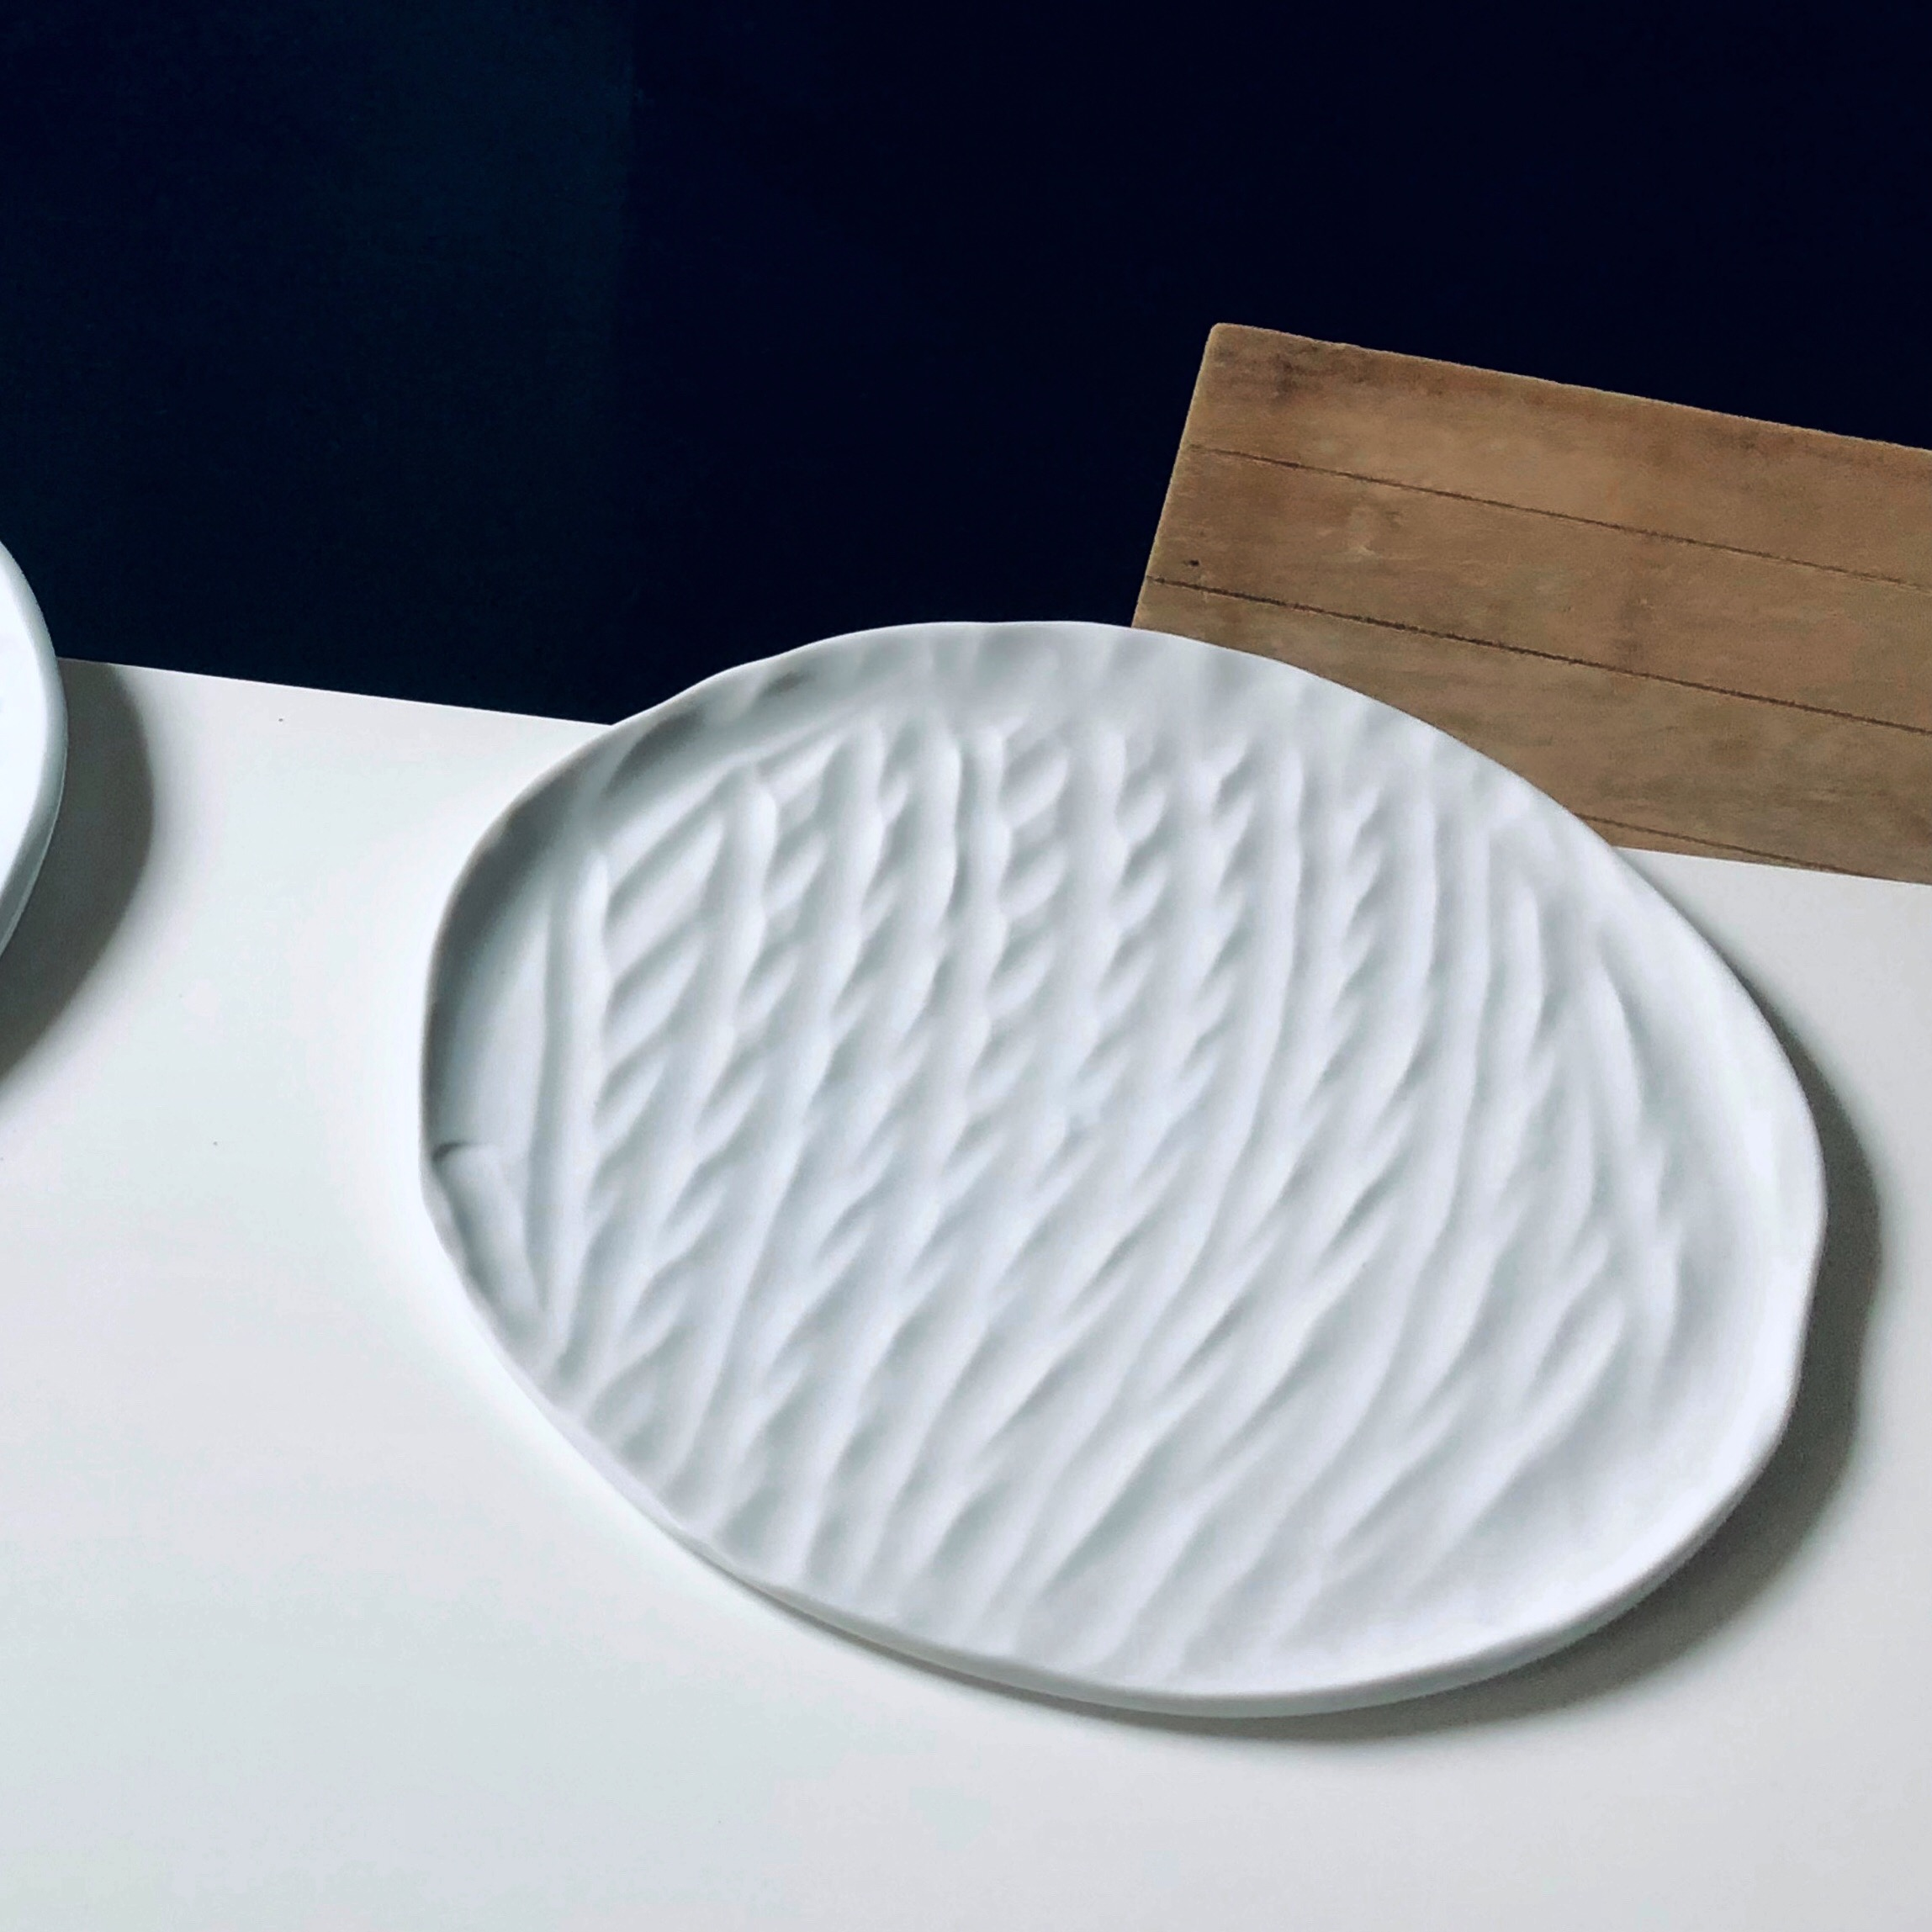 SOMA, my first completely handmade porcelain plate